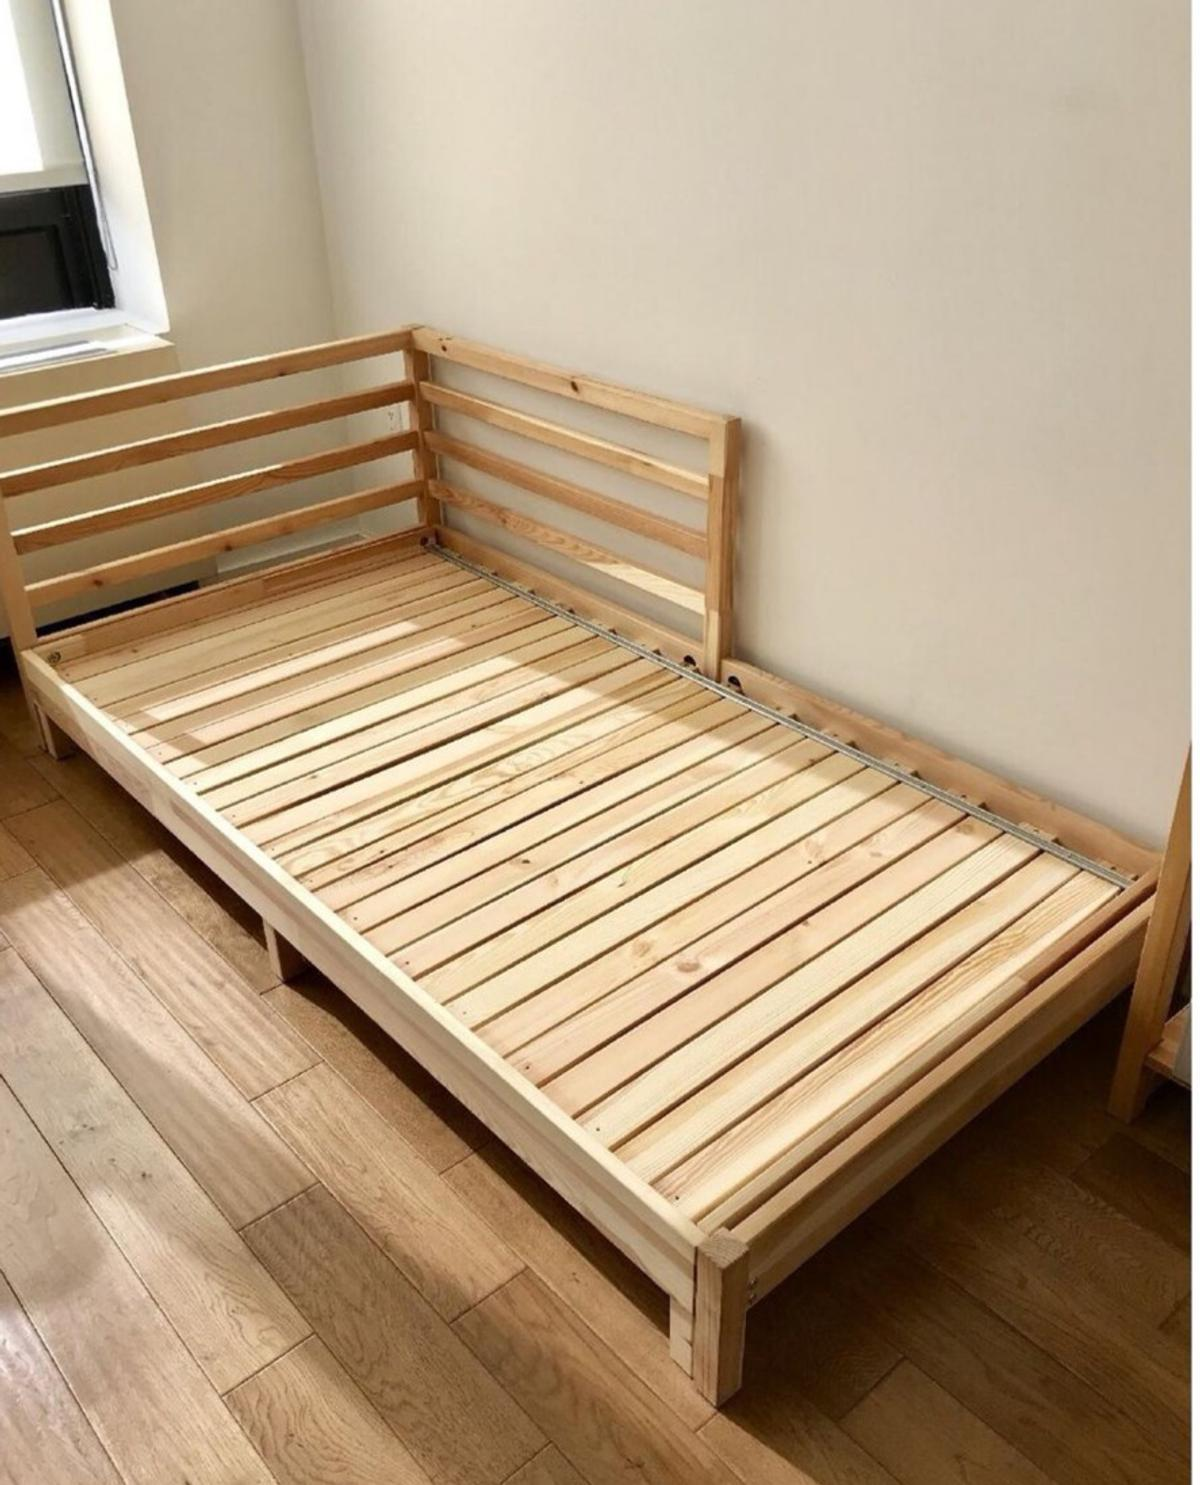 Ikea Tavok Day Bed In Se23 London For 60 00 For Sale Shpock